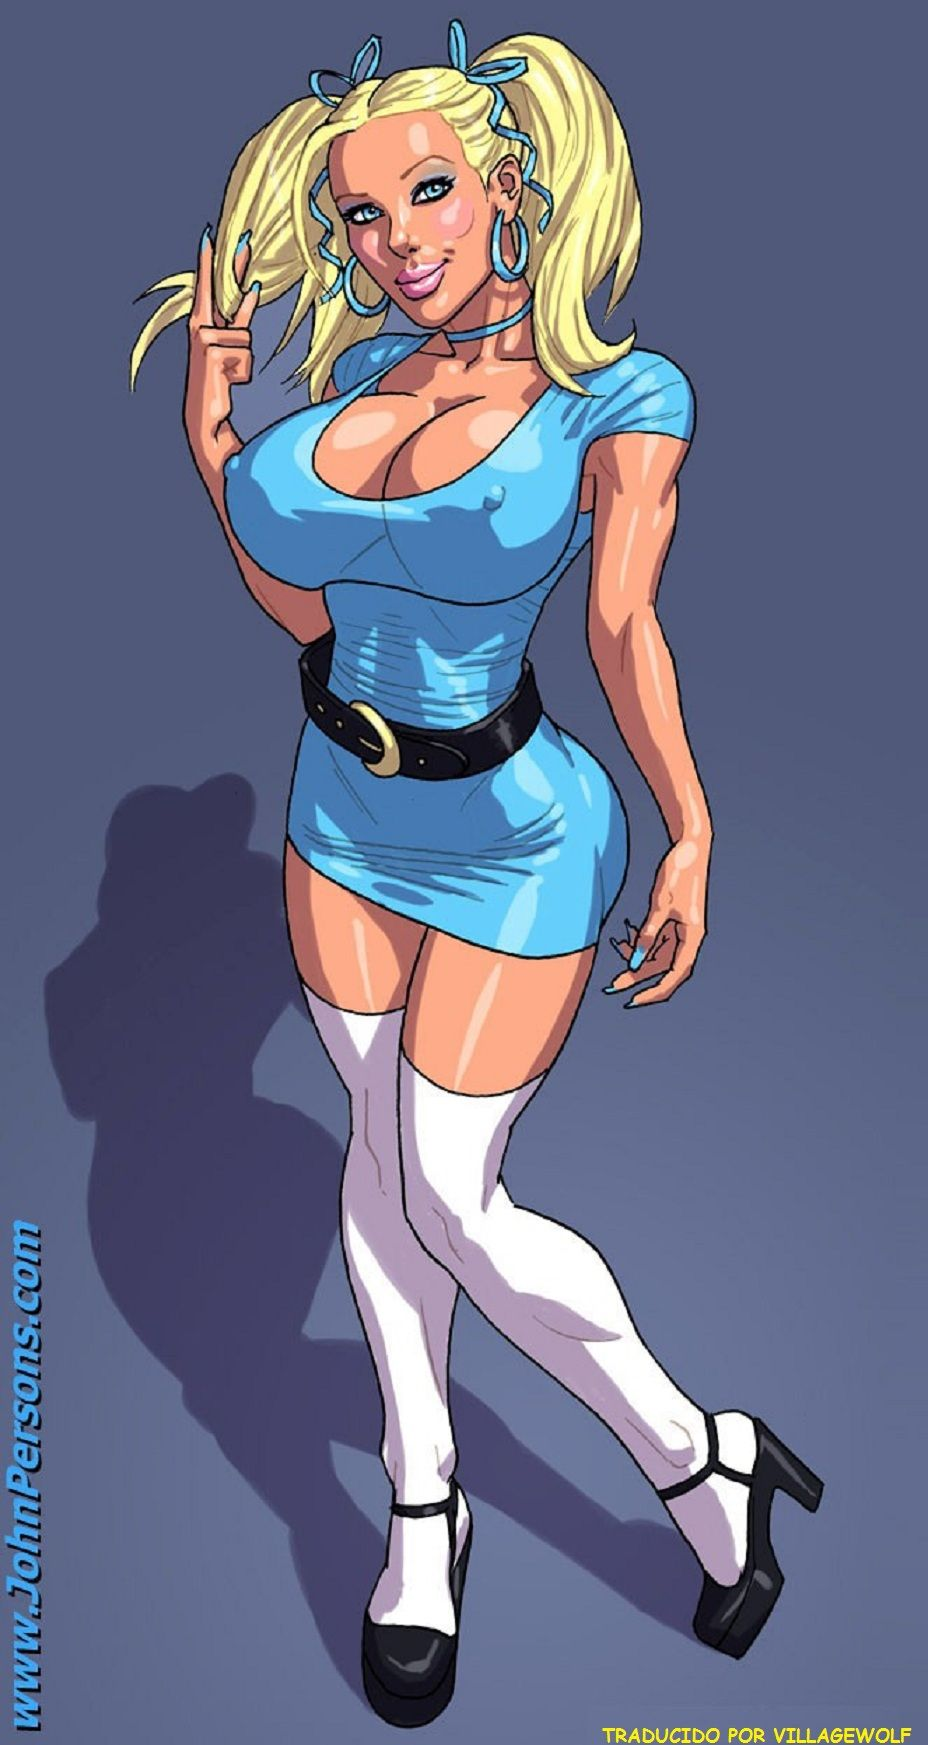 image host | cartoon babes | pinterest | cartoon, drawing ideas and